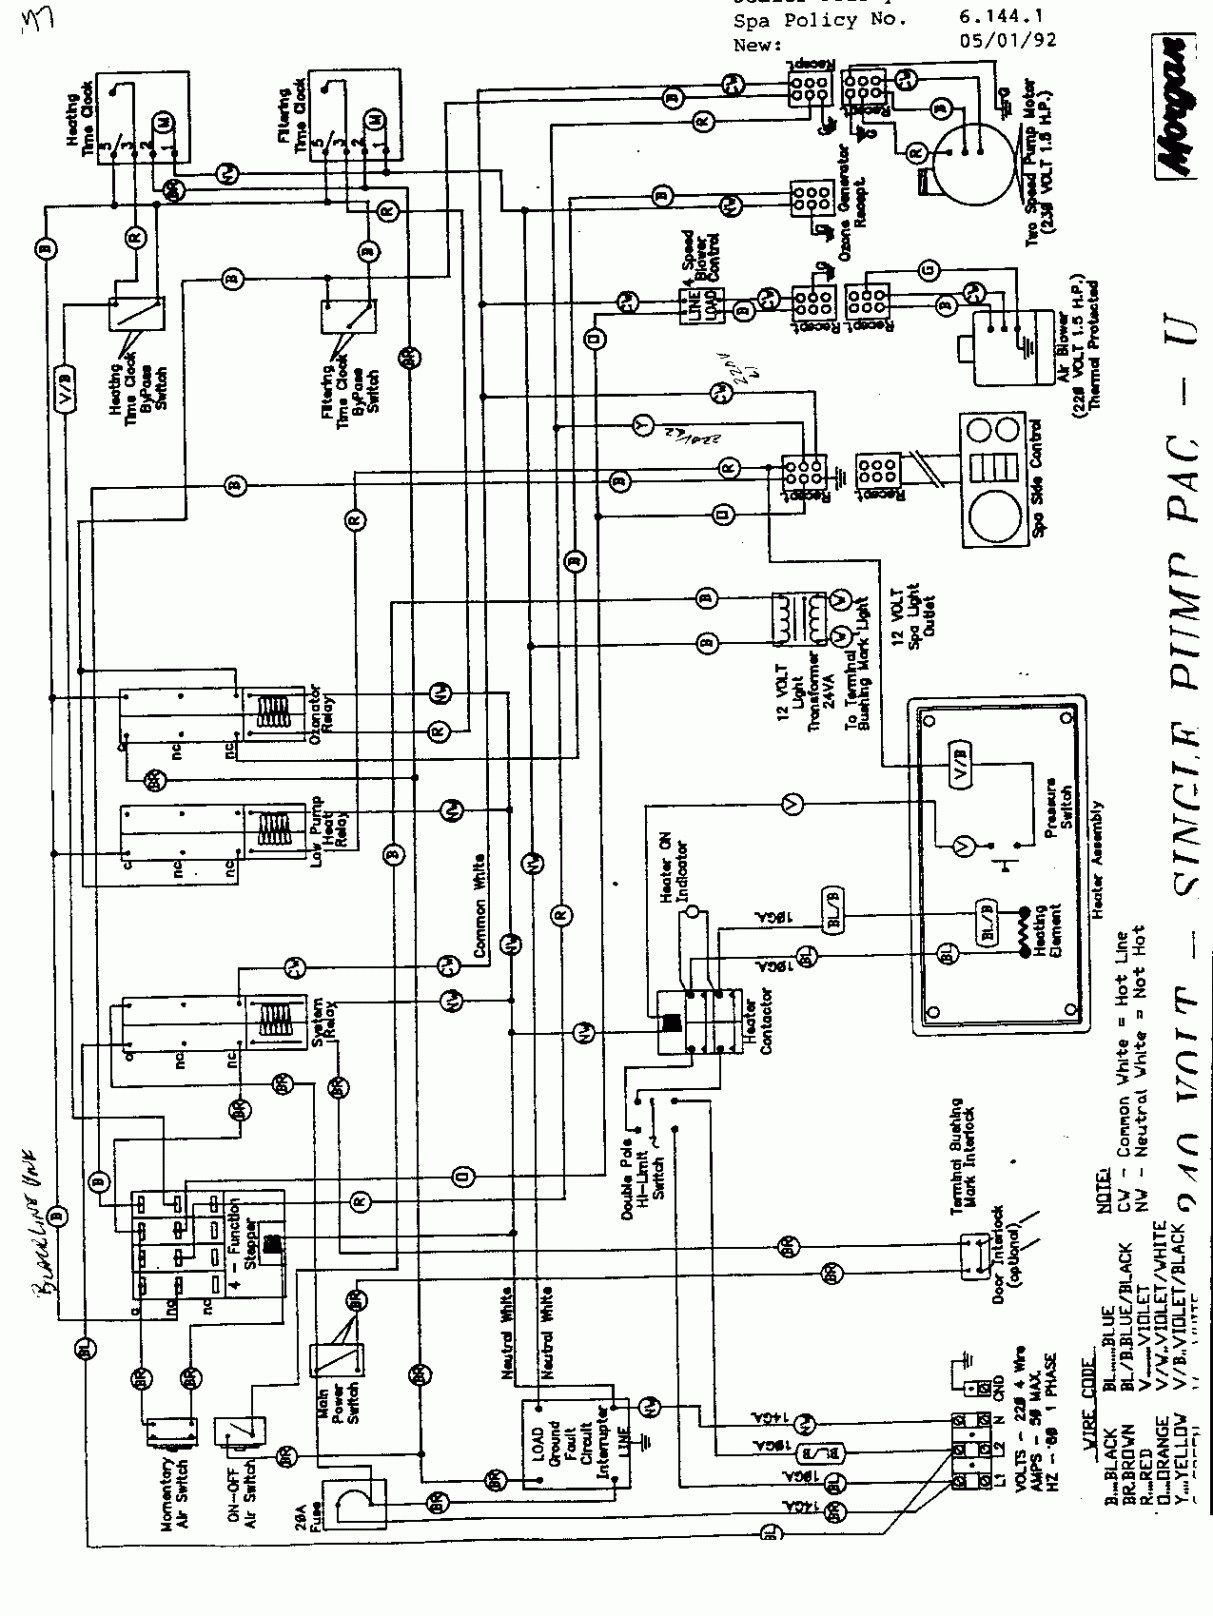 Four Winds Spa Wiring Diagram